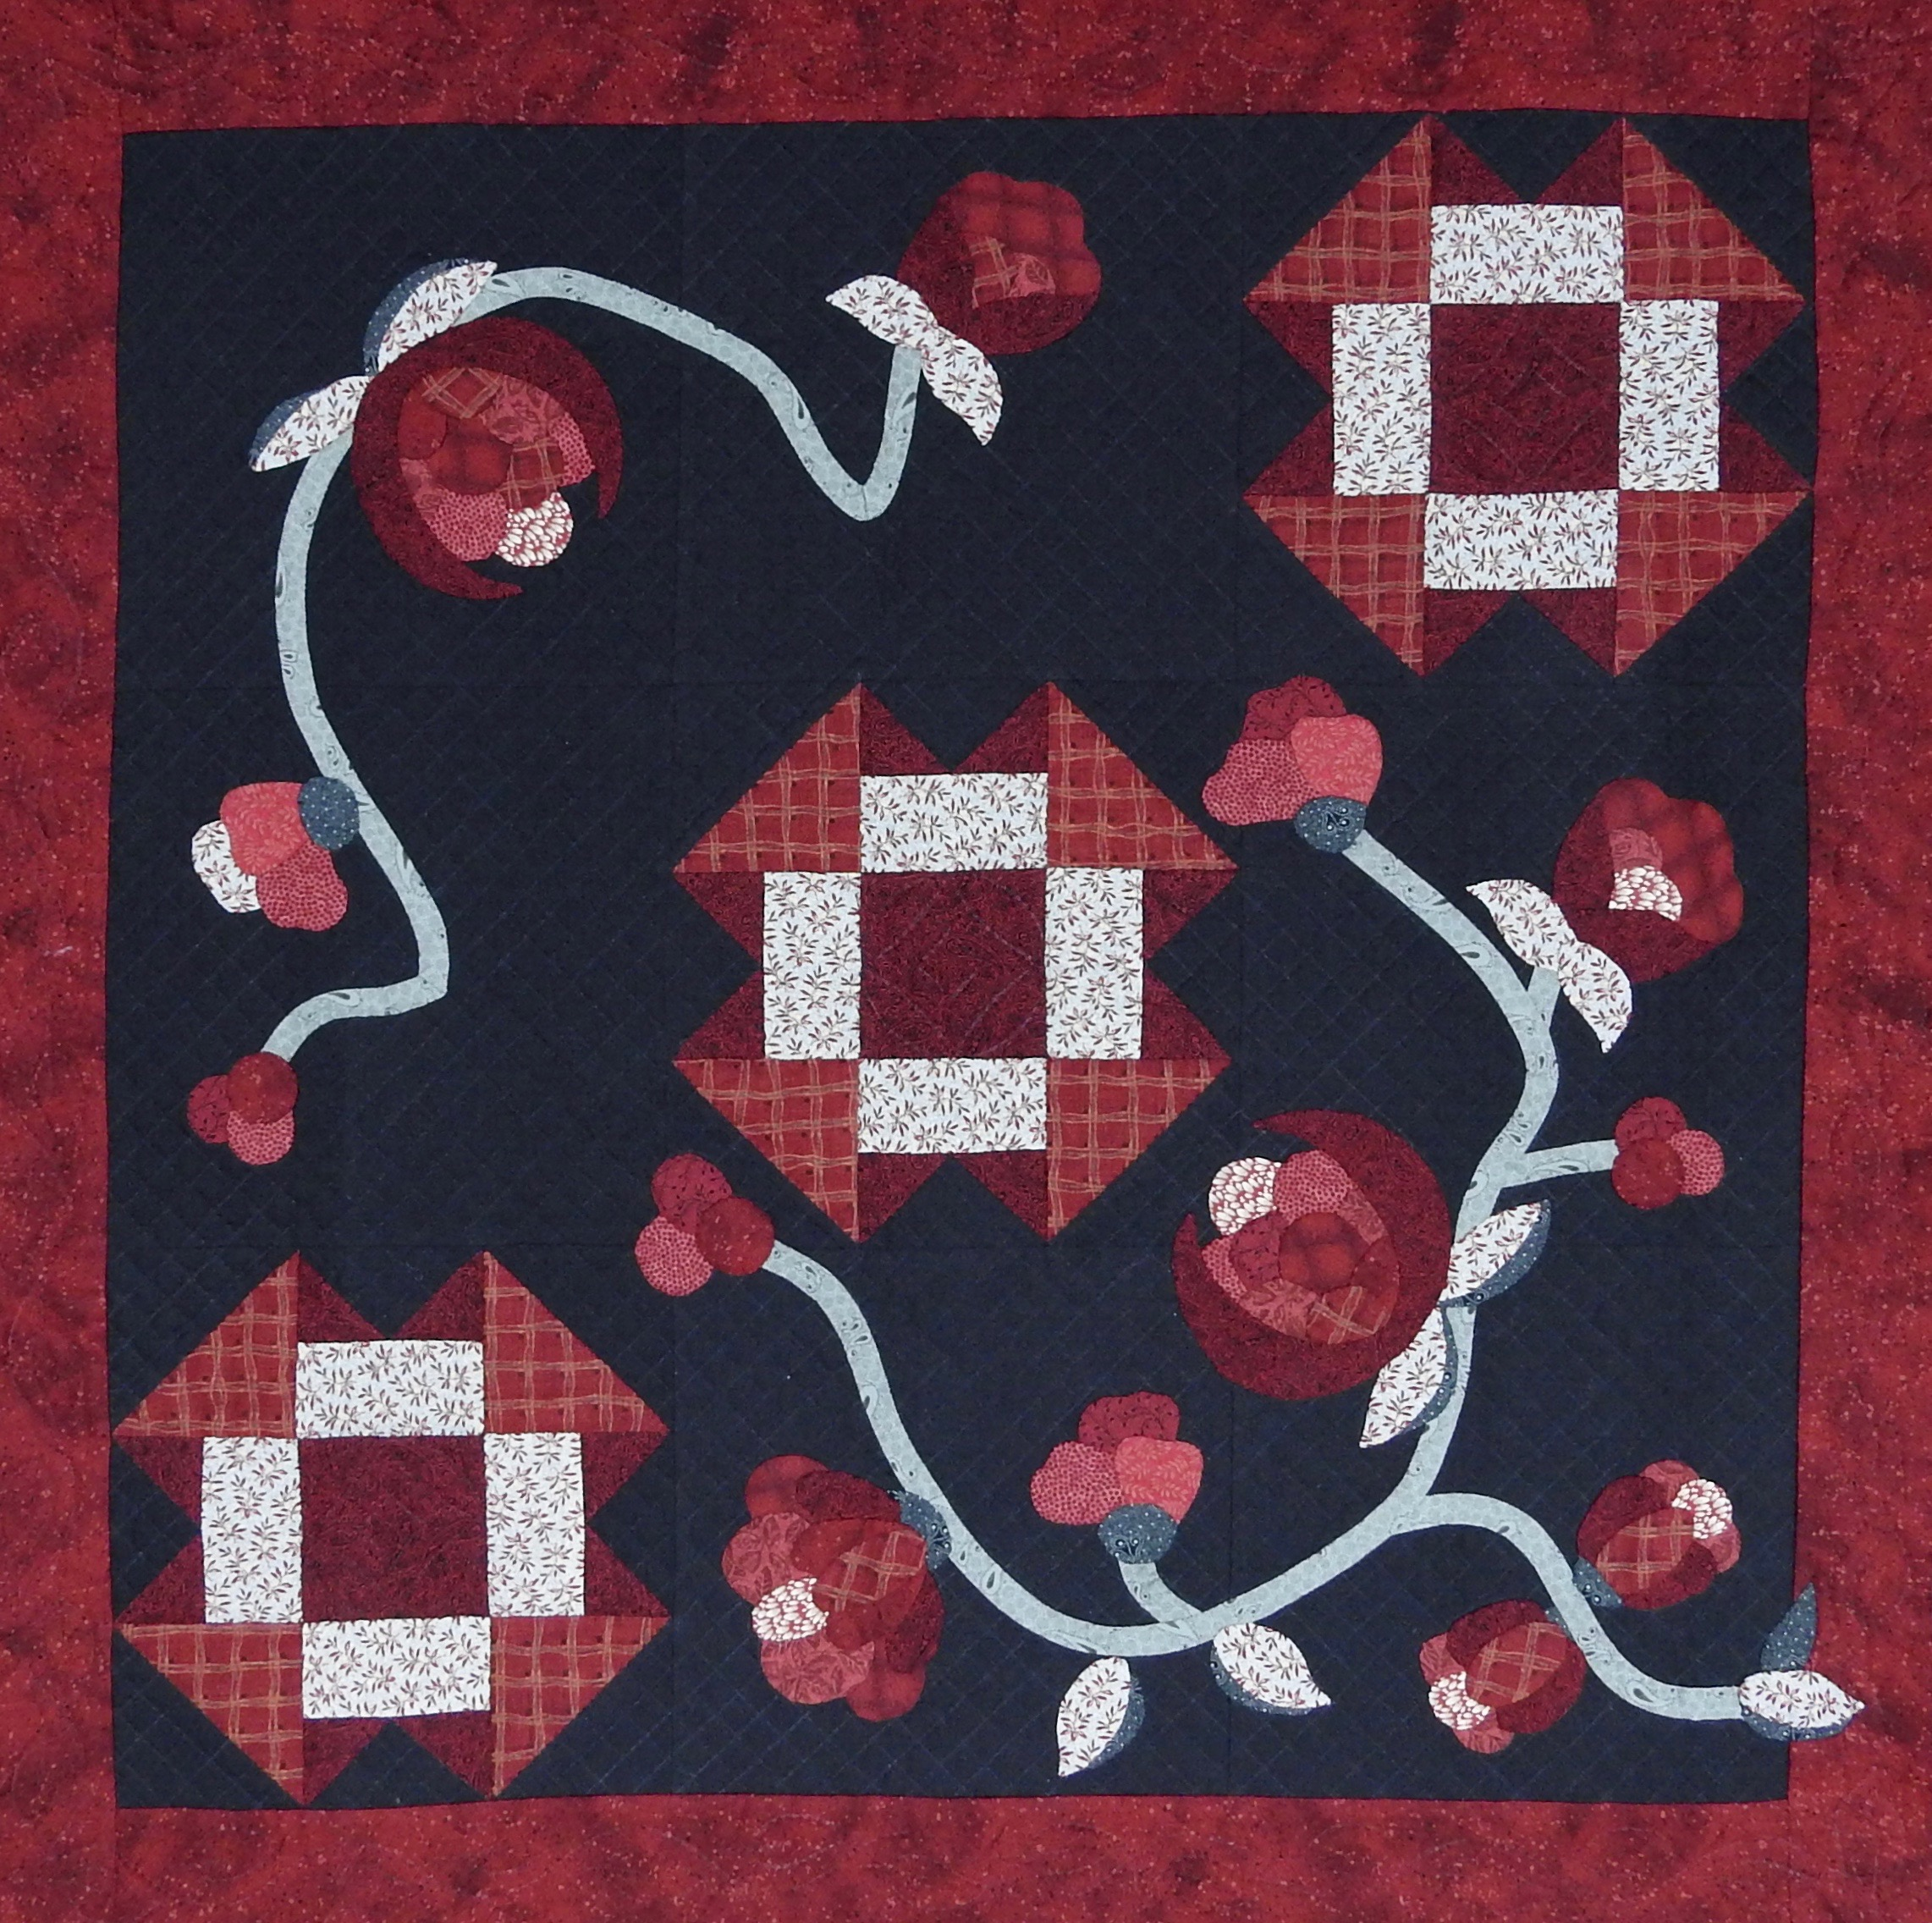 """Yours Truly, Designed & Pieced by Helen Glick, Appliquéd & Quilted by Elaine Frey, donated by Elaine Frey & Helen Glick, 31 x 31"""""""